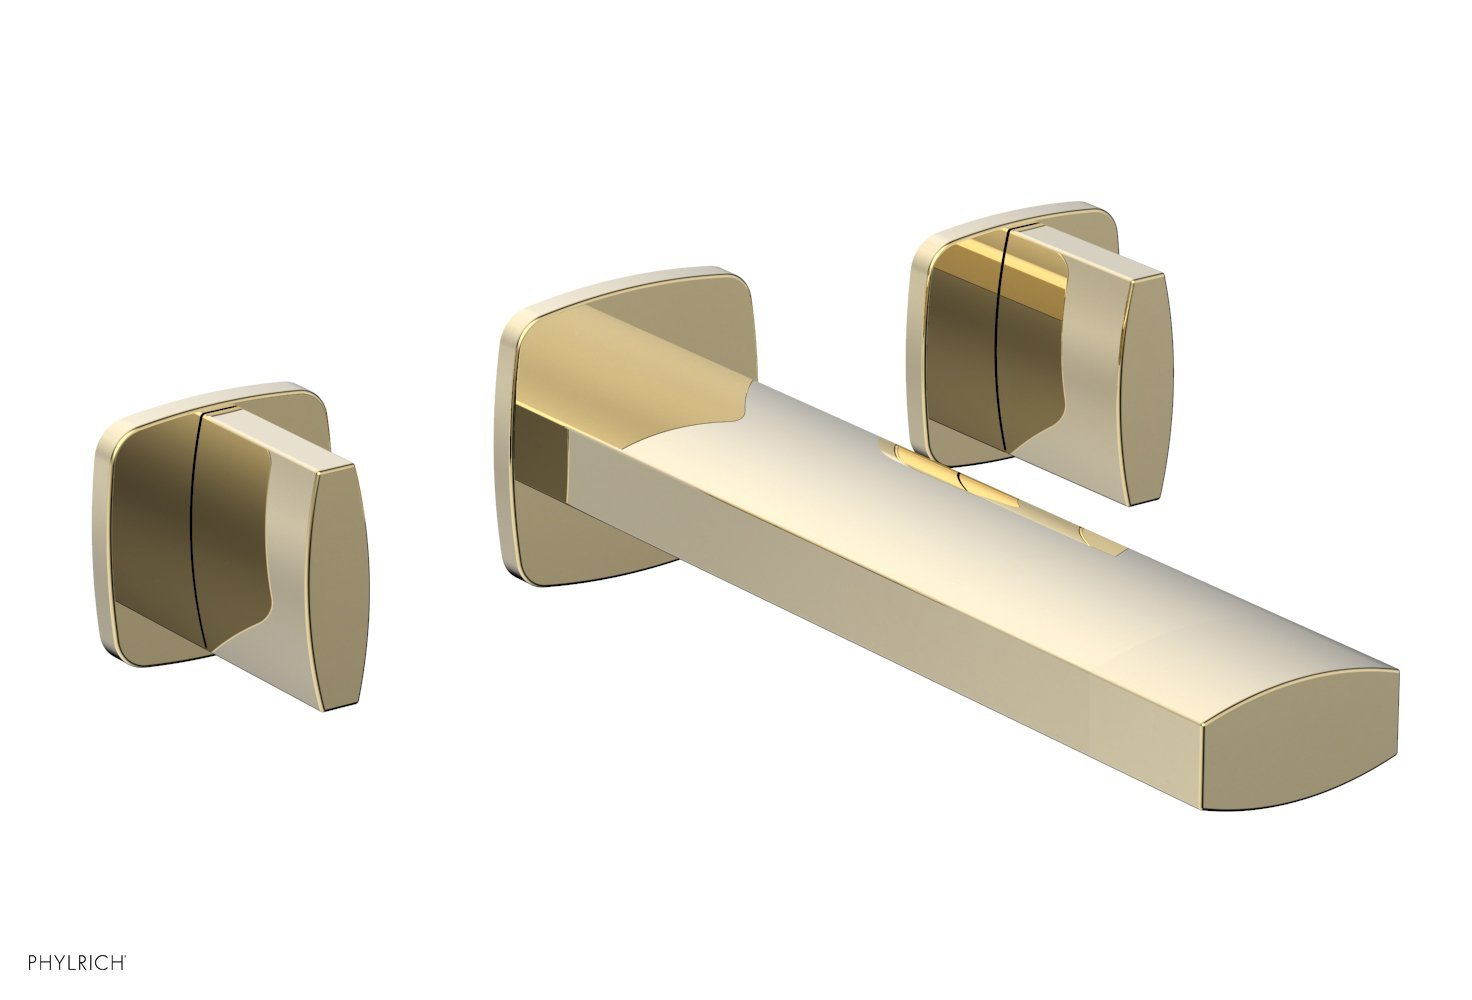 Phylrich 181-11-03U RADI Wall Lavatory Set - Blade Handles - Polished Brass Uncoated